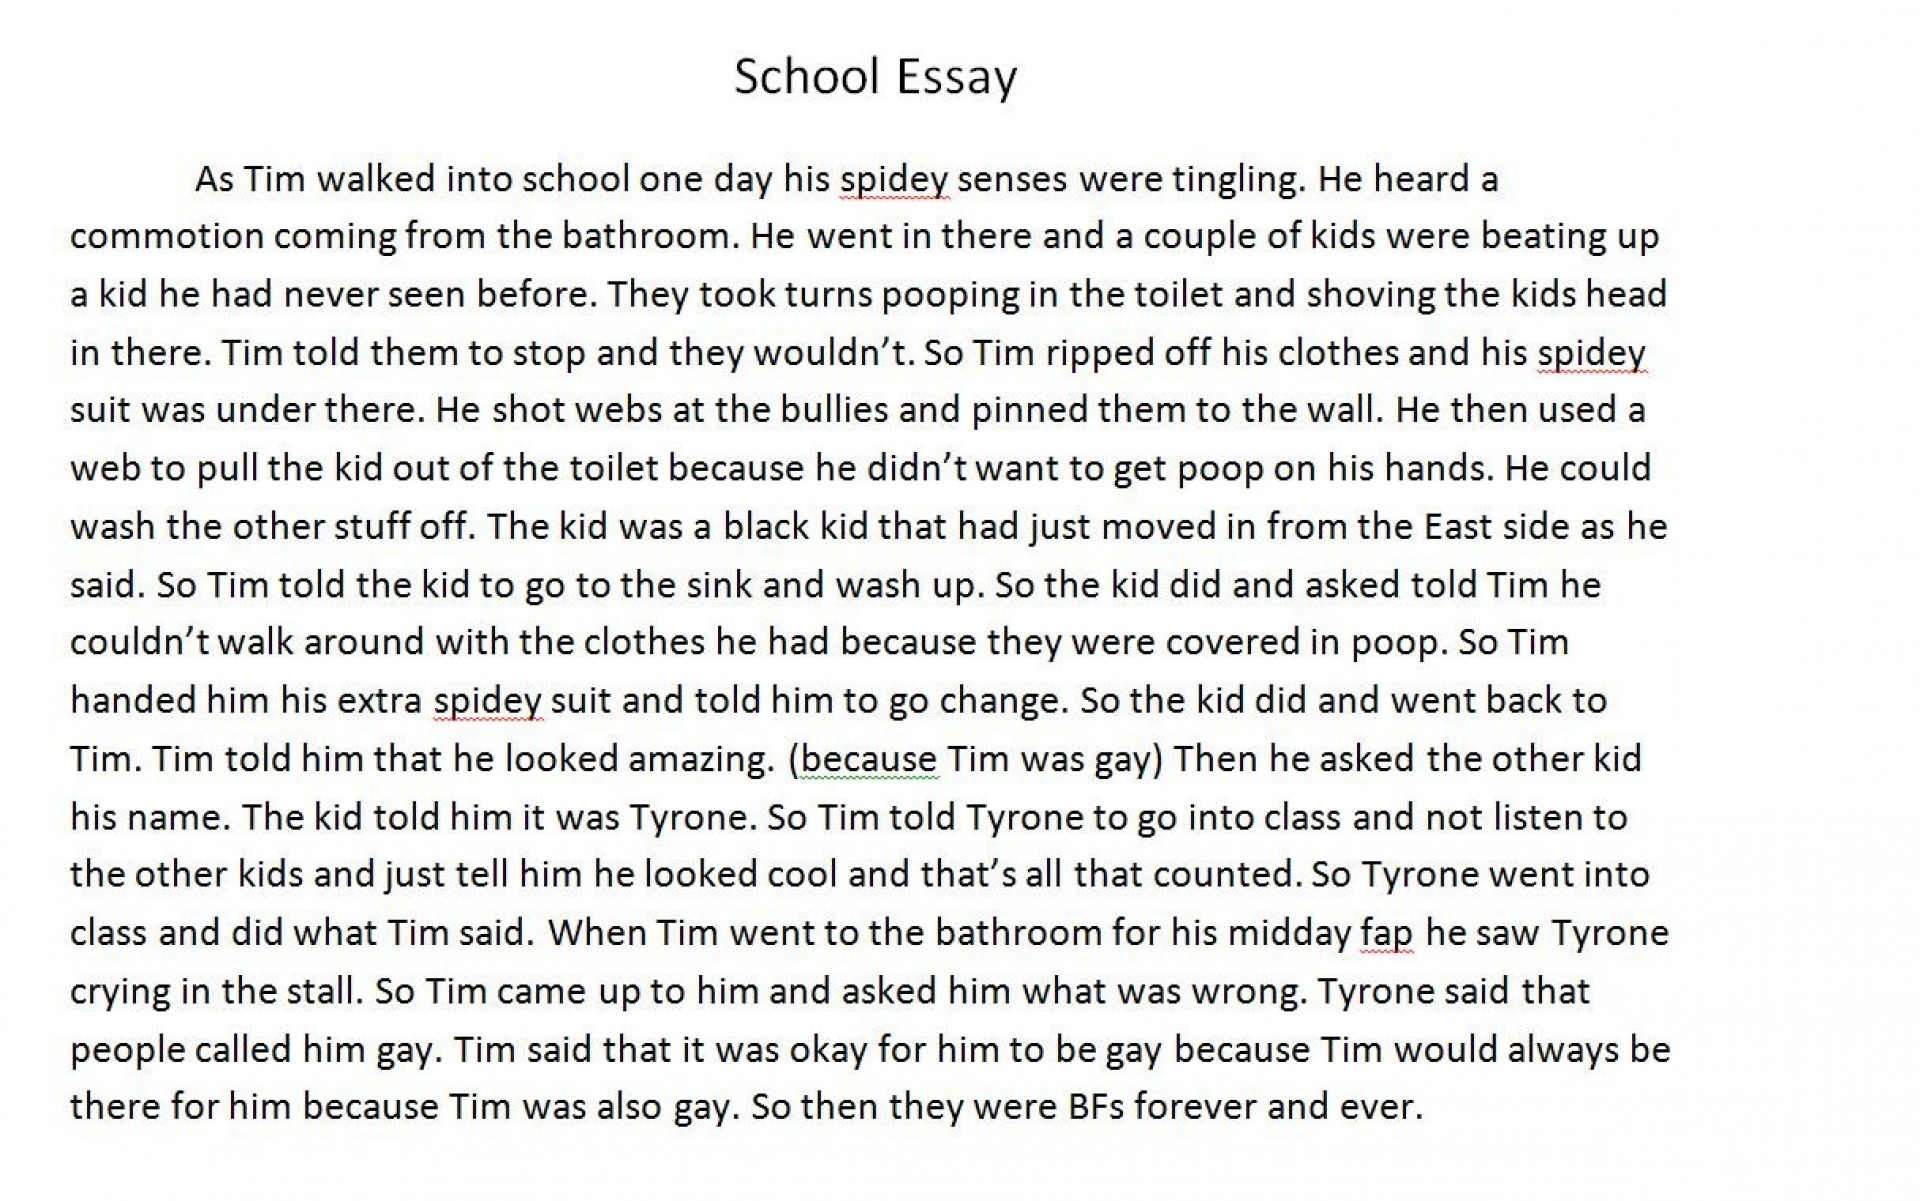 013 Fddb74 3451752 Breaking Social Norms Essay Awesome Free Conclusion 1920